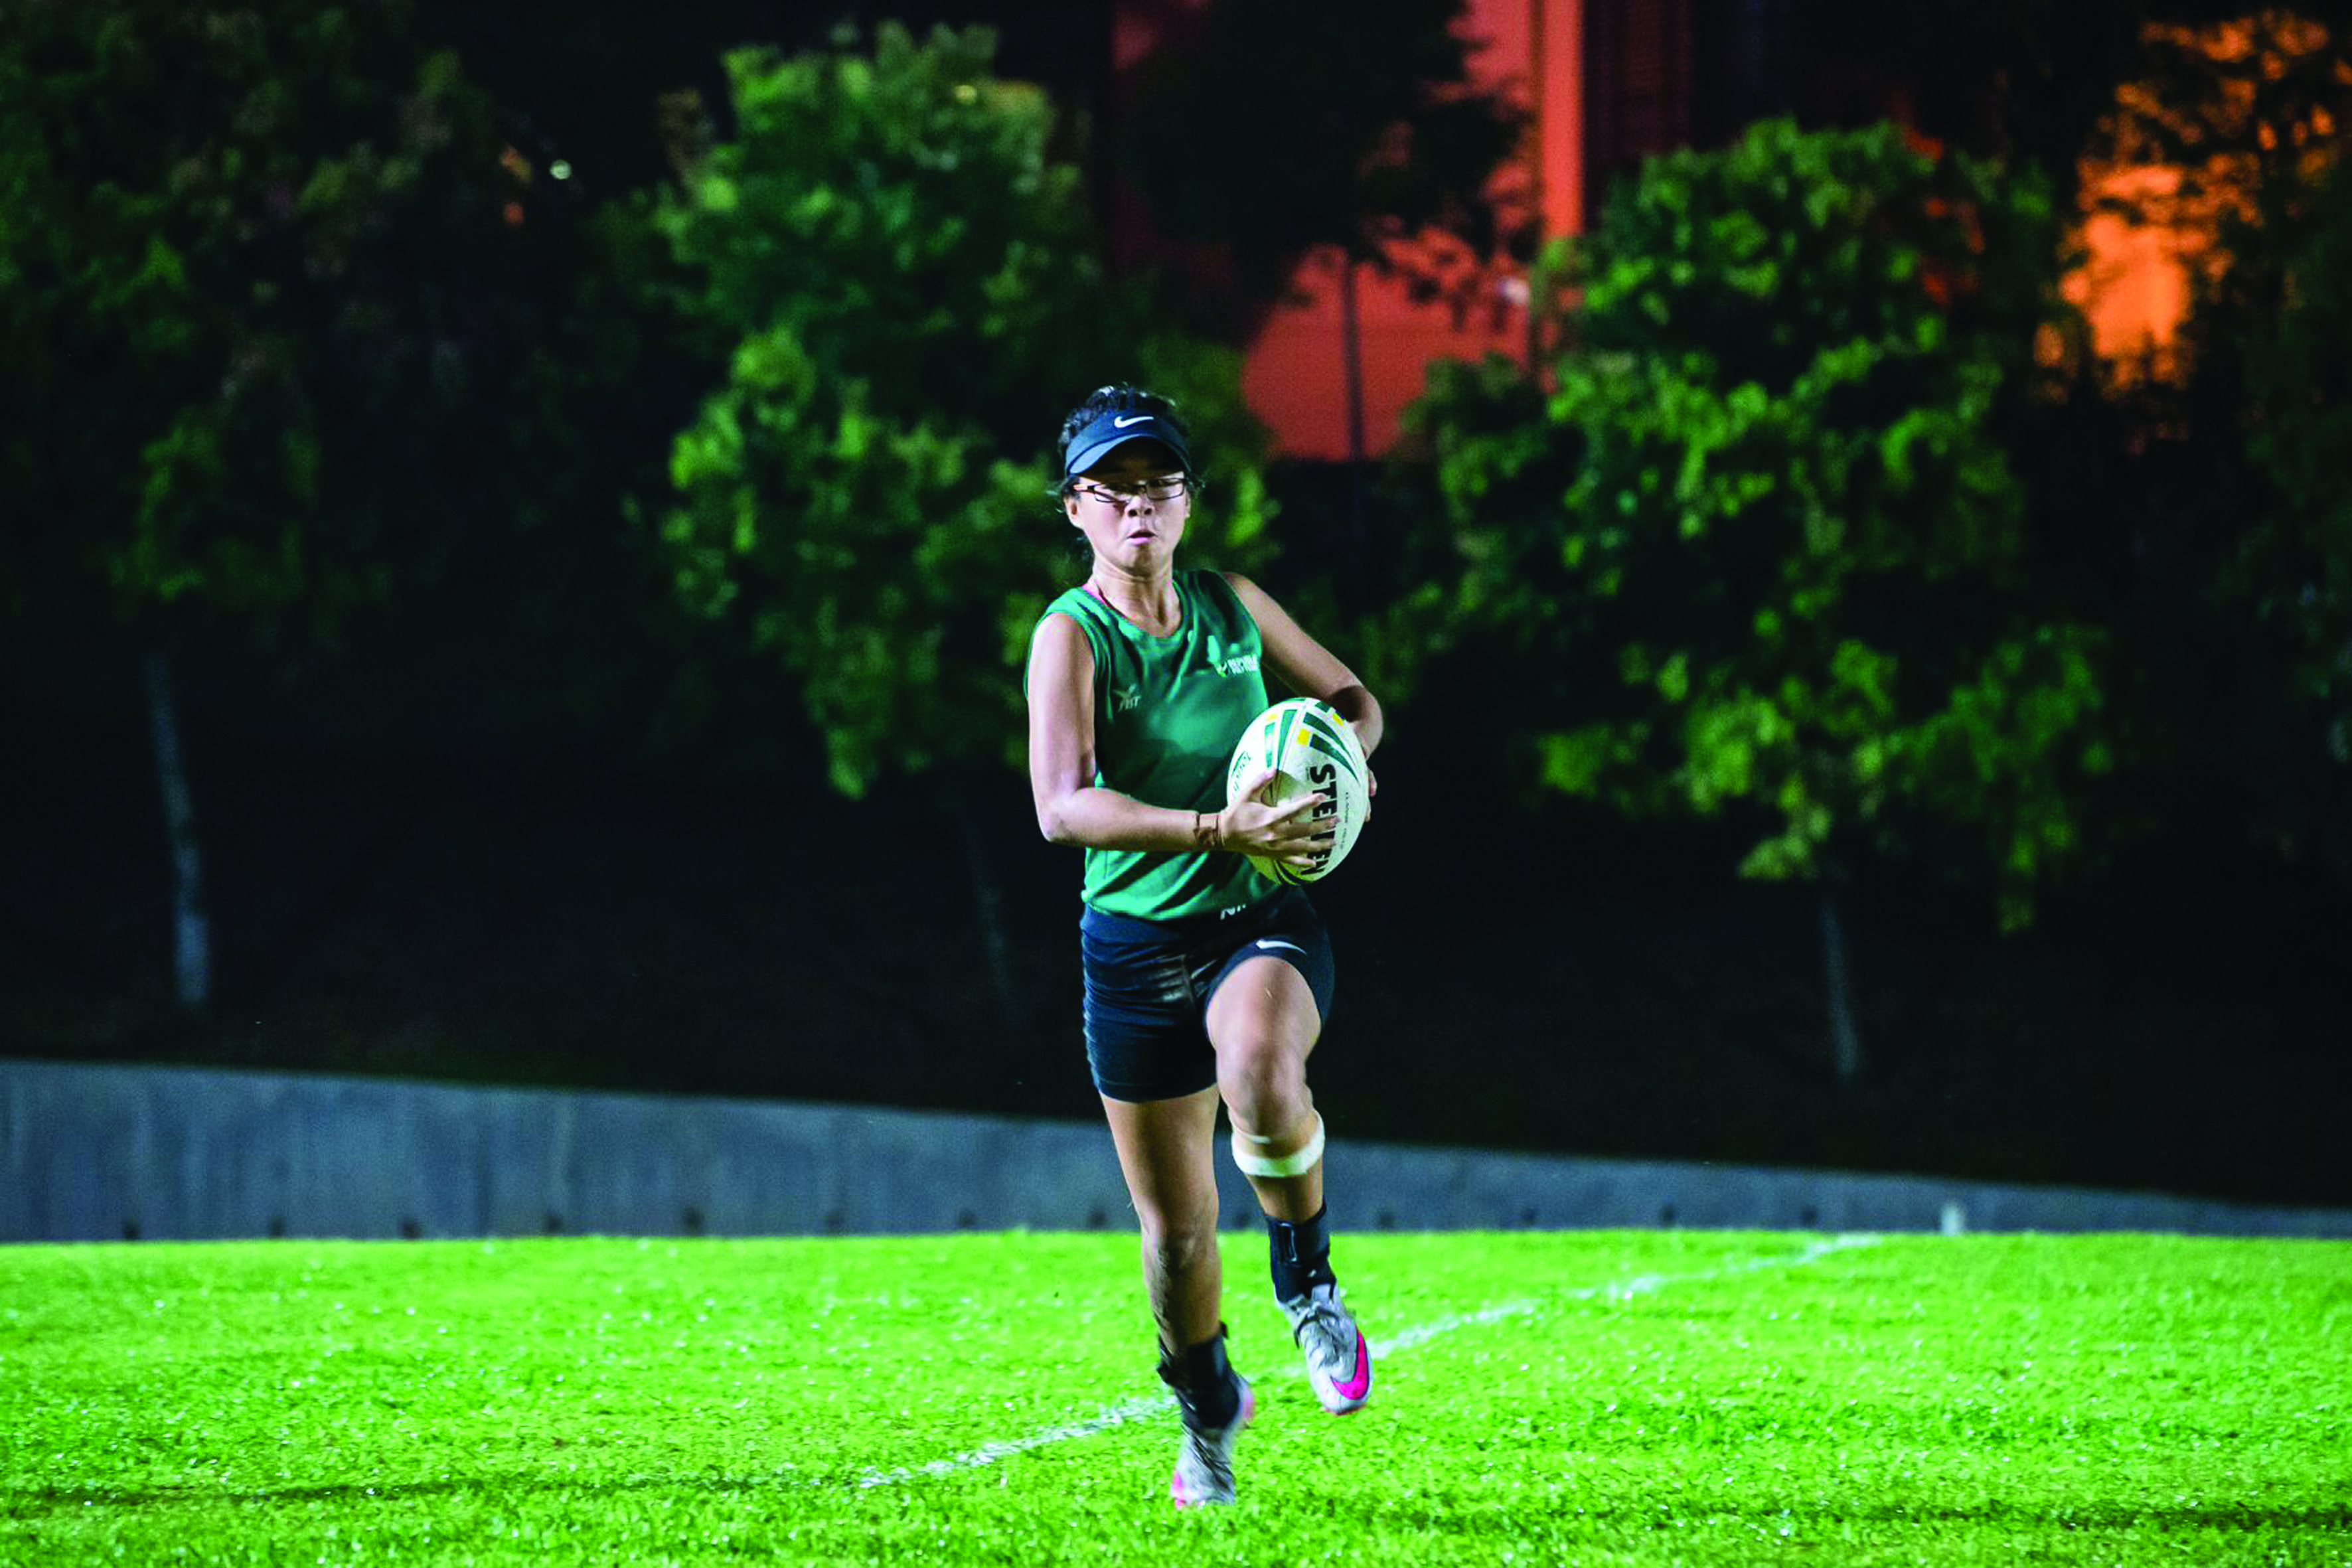 ON THE BALL: Touch Rugby player Tessa Amanda Sa'at, 19, spends six days a week preparing for the Polytechnic- Institute of Technical Education (POL-ITE) Games. Tessa feels a player needs humility, passion and determination to be a top sportsman. PHOTO: Zaini Qayyum